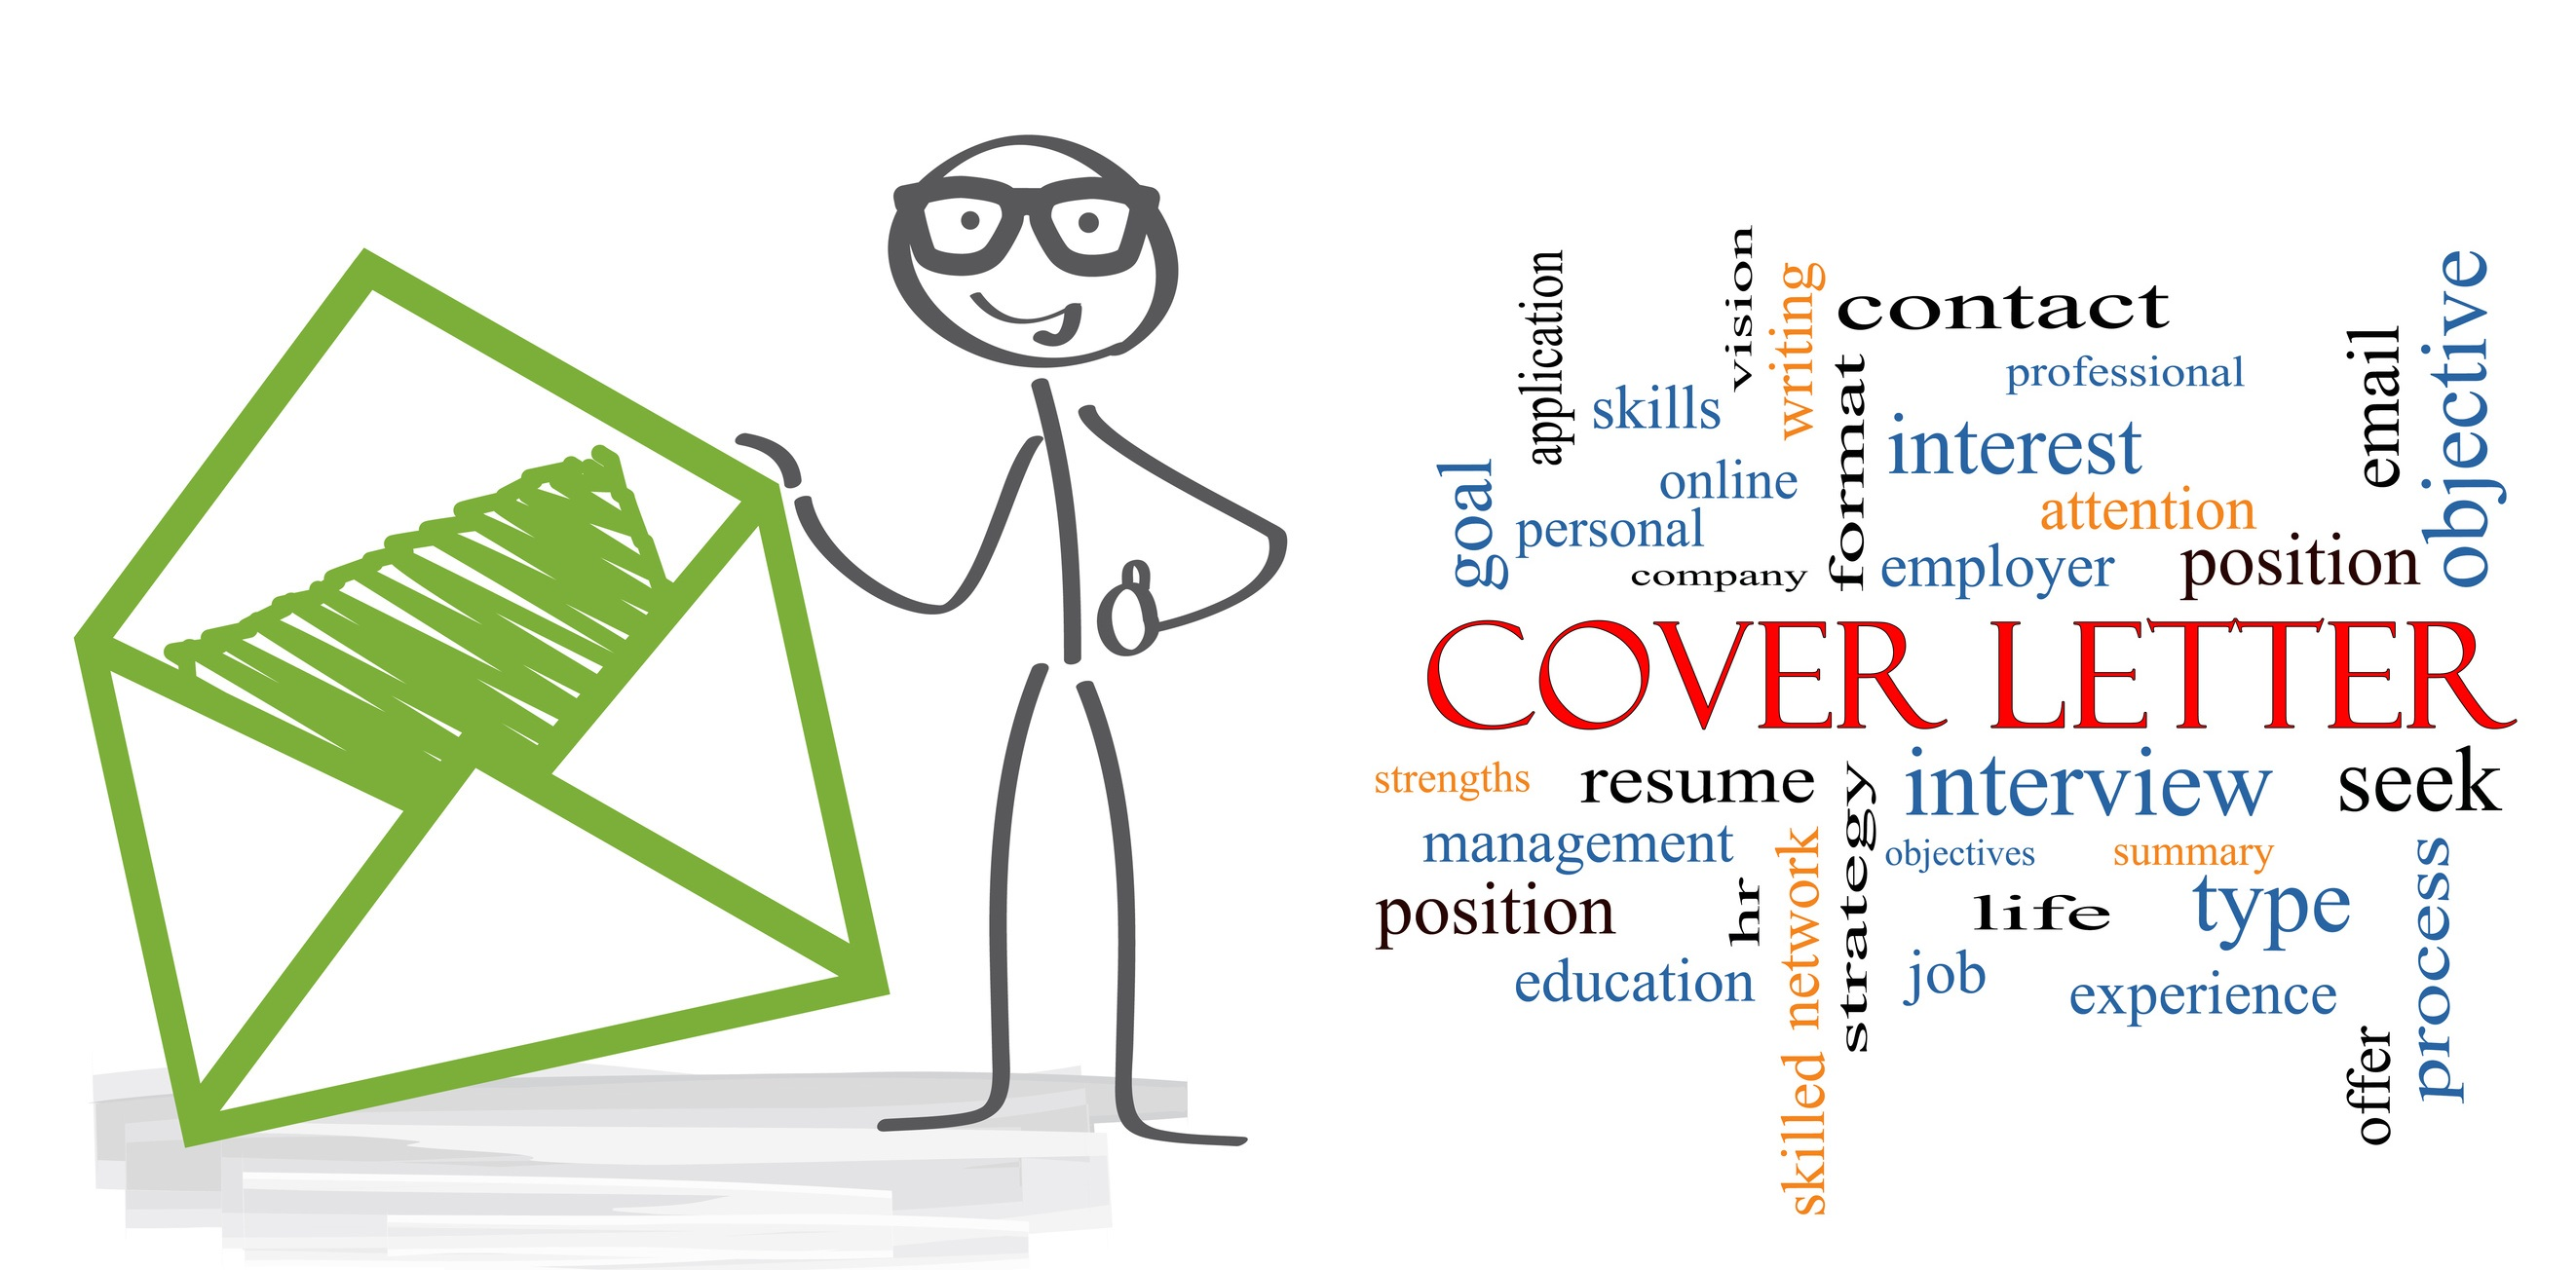 3 sample cover letter templates to get you started for Trainee solicitor cover letter